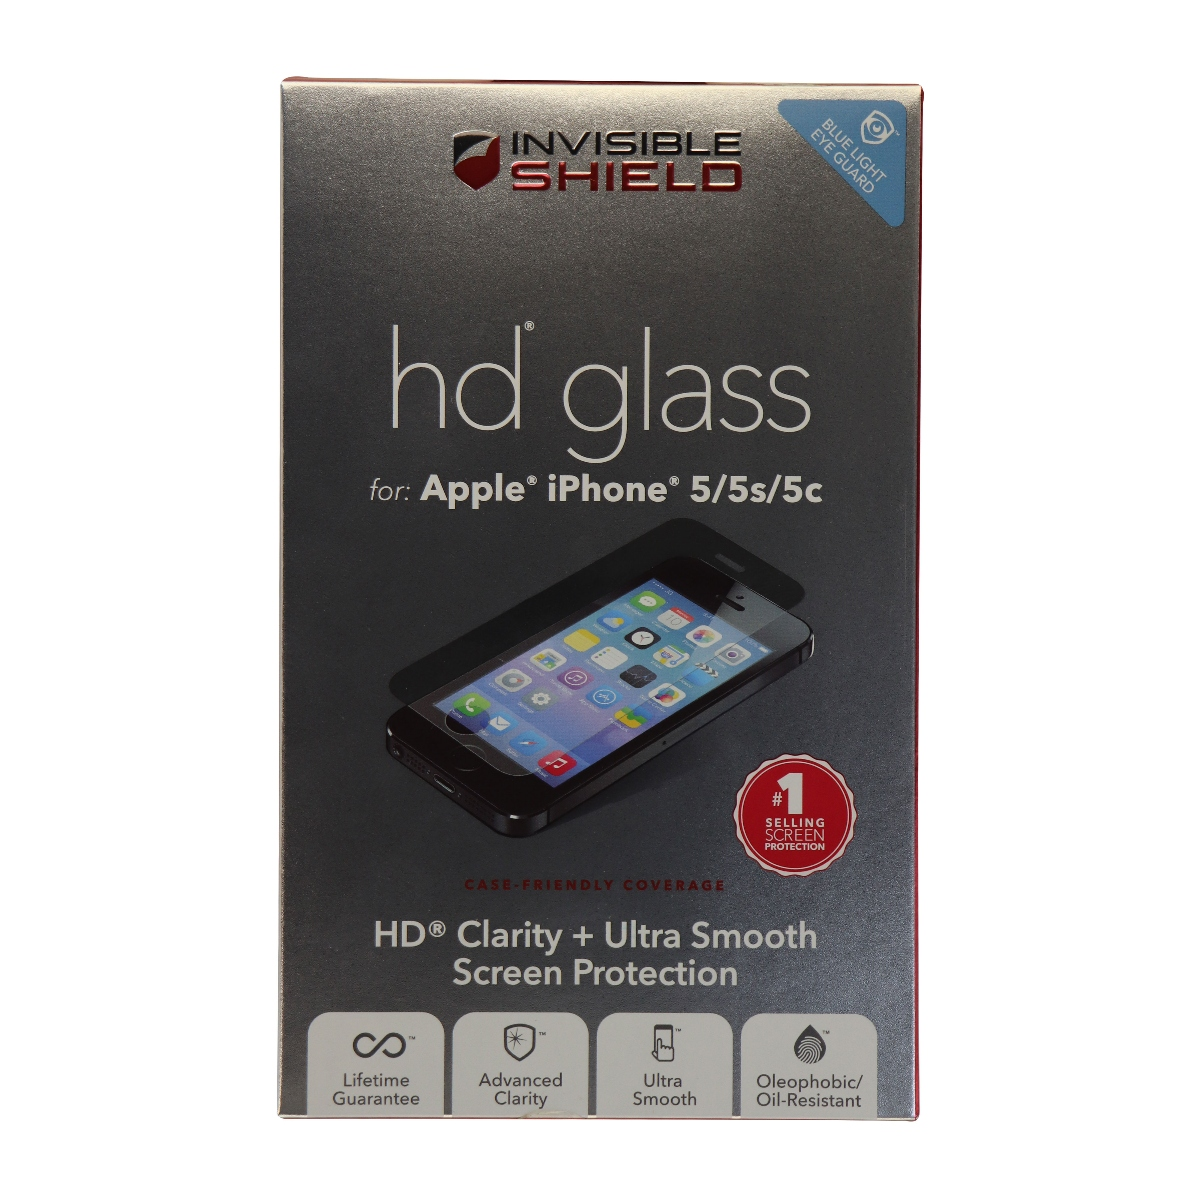 Invisible Shield HD Glass Screen Protector for iPhone 5S, 5C, 5 - Clear